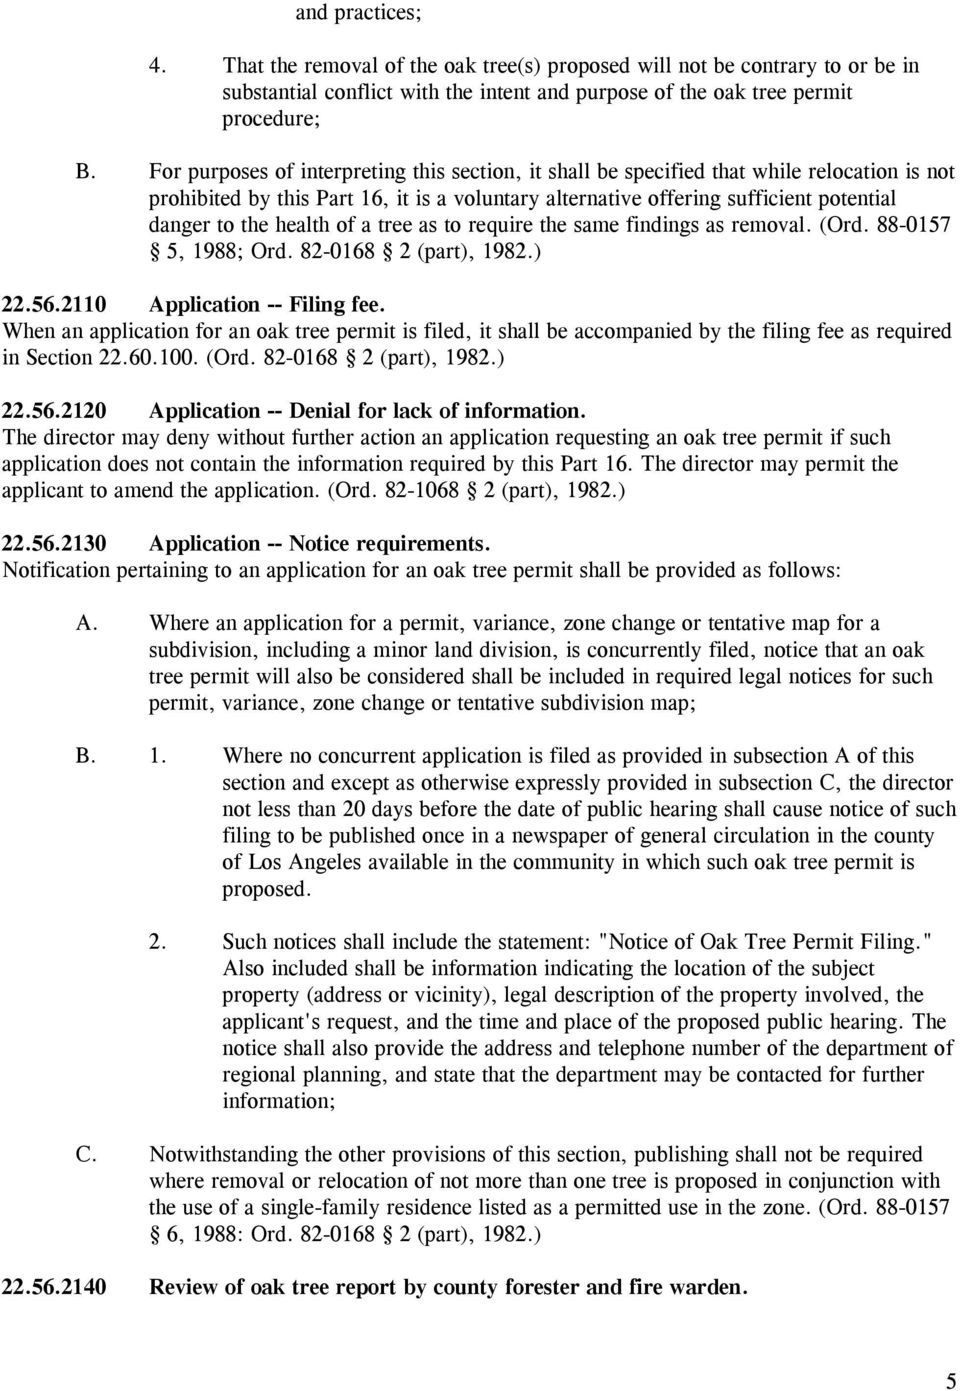 health of a tree as to require the same findings as removal. (Ord. 88-0157 5, 1988; Ord. 82-0168 2 (part), 1982.) 22.56.2110 Application -- Filing fee.